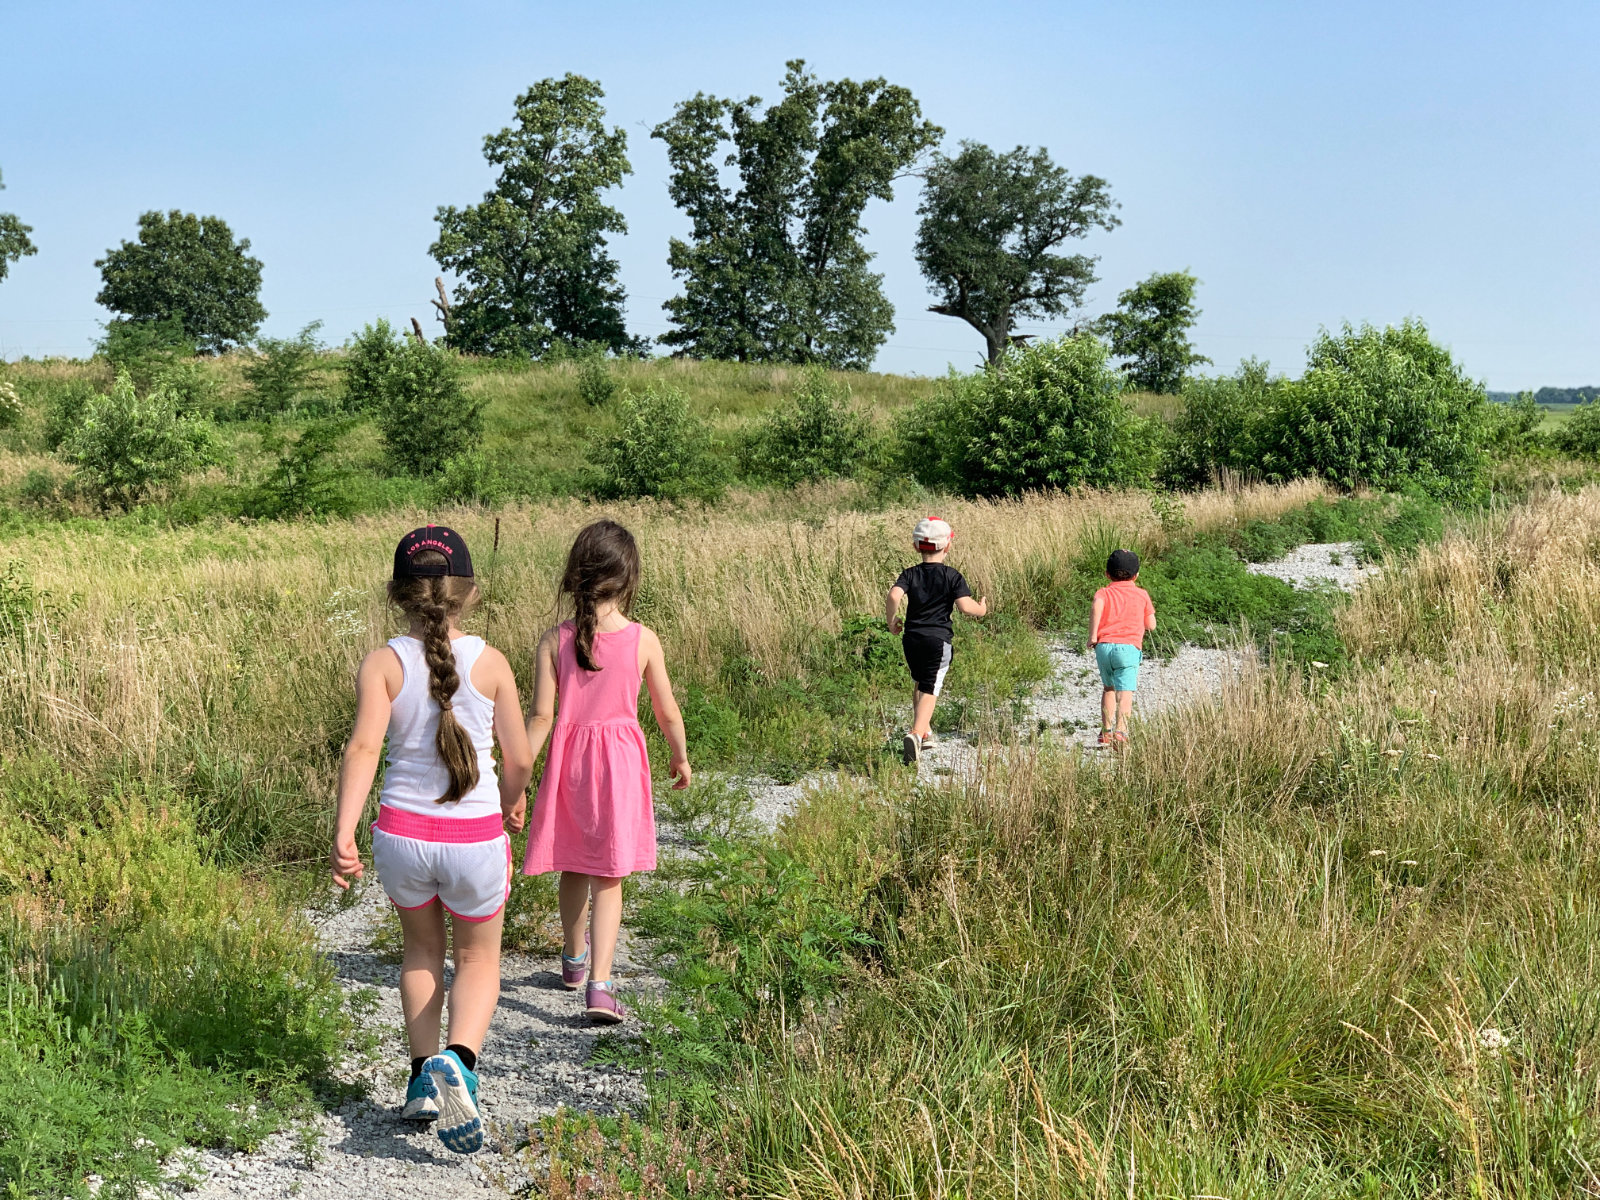 Hiking in Indiana at Kankakee Sands looking for bison